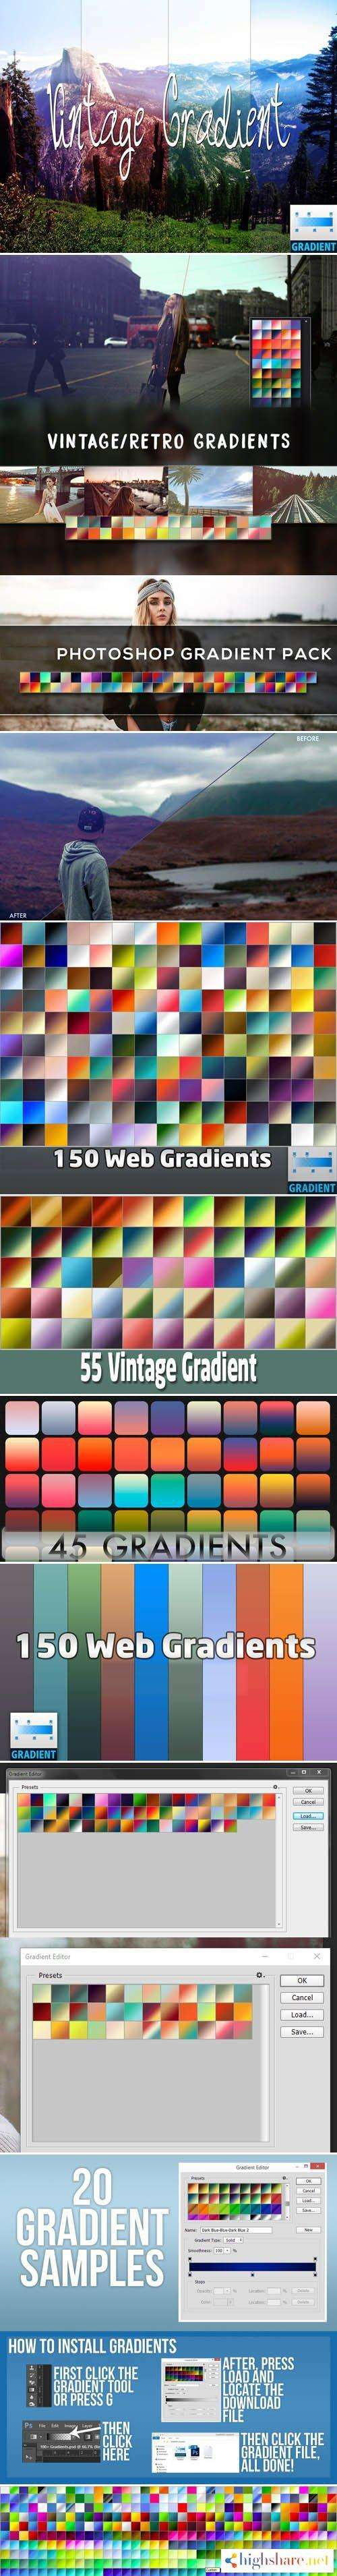 700 photoshop gradients collection 5f49f7548693f - 700+ Photoshop Gradients Collection